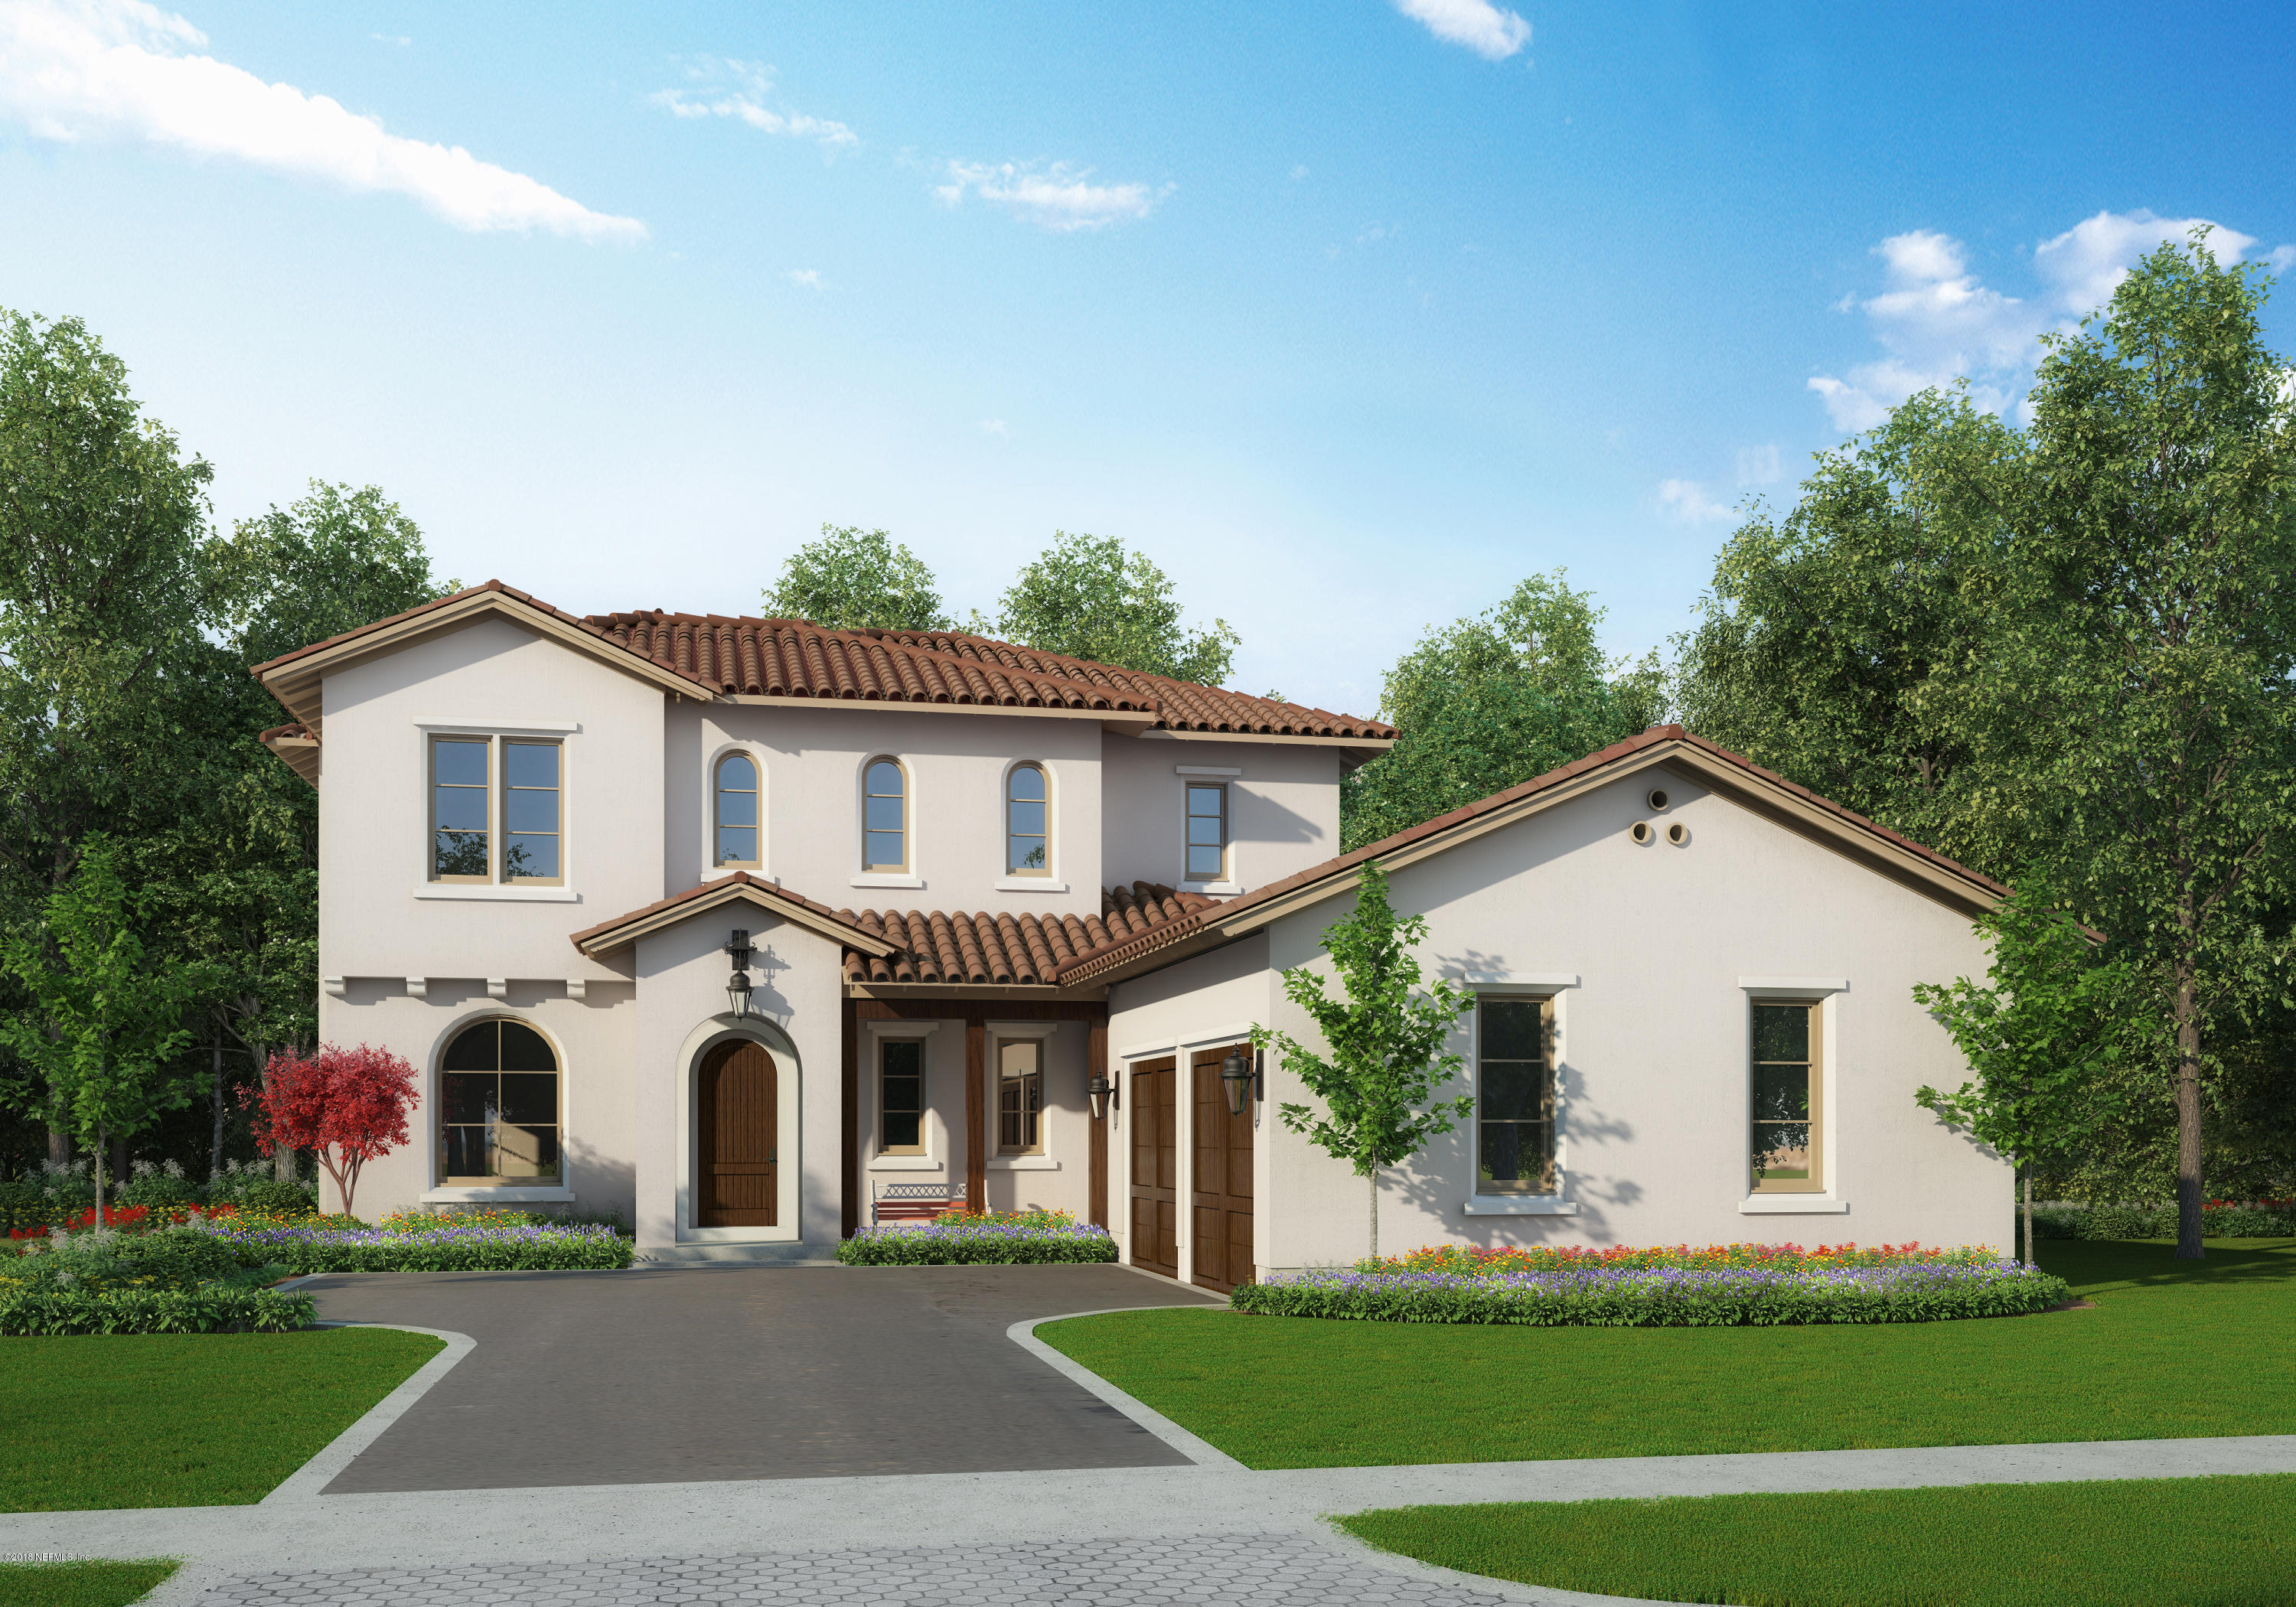 119 GRAND PALM, PONTE VEDRA BEACH, FLORIDA 32082, 4 Bedrooms Bedrooms, ,4 BathroomsBathrooms,Residential - single family,For sale,GRAND PALM,961167